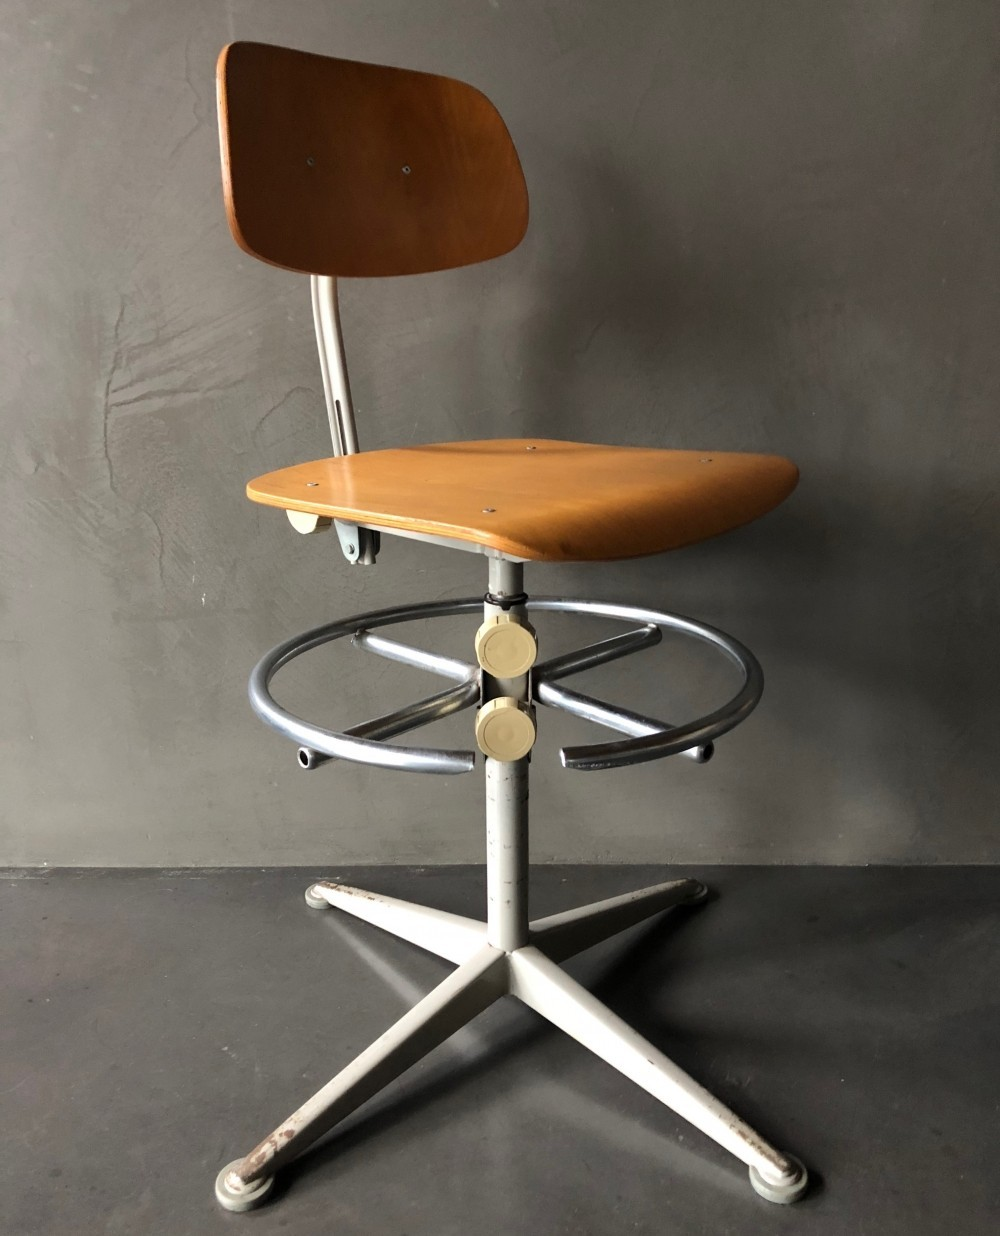 10 x Architect stool by Friso Kramer for Ahrend de Cirkel, 1960s